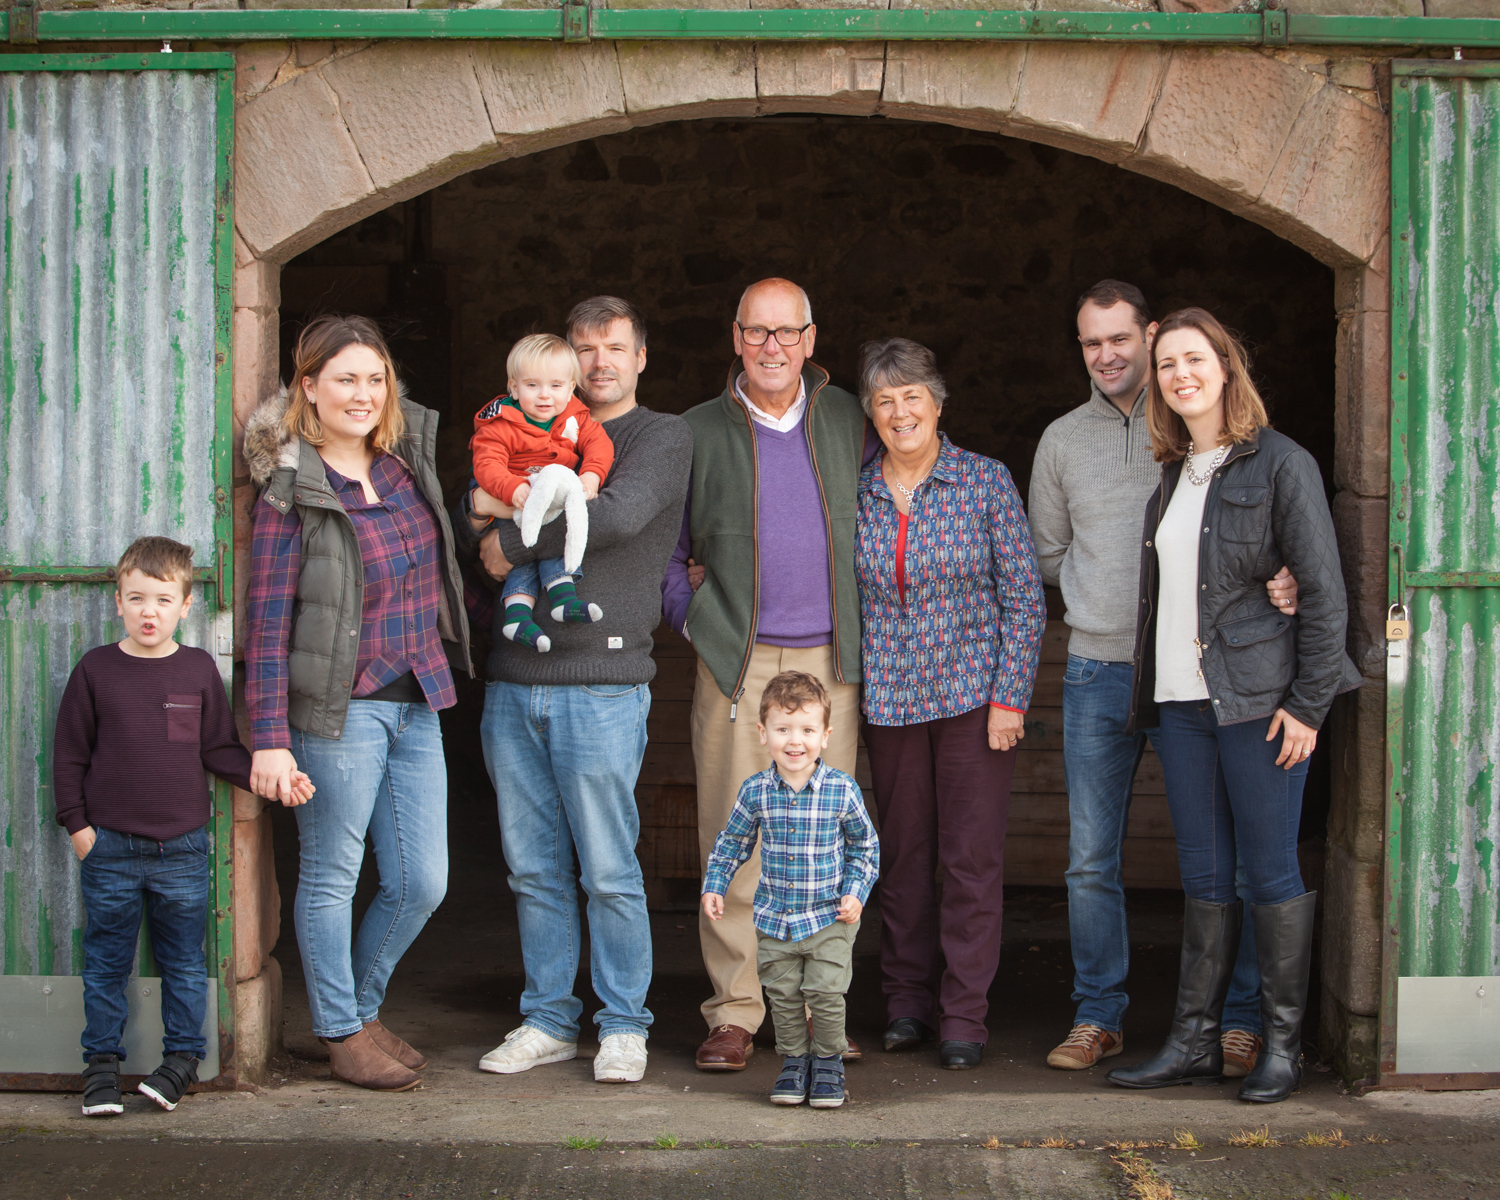 PICTORIAL_BERWICK_photography_location_family_farm_borders_northumberland_-.jpg